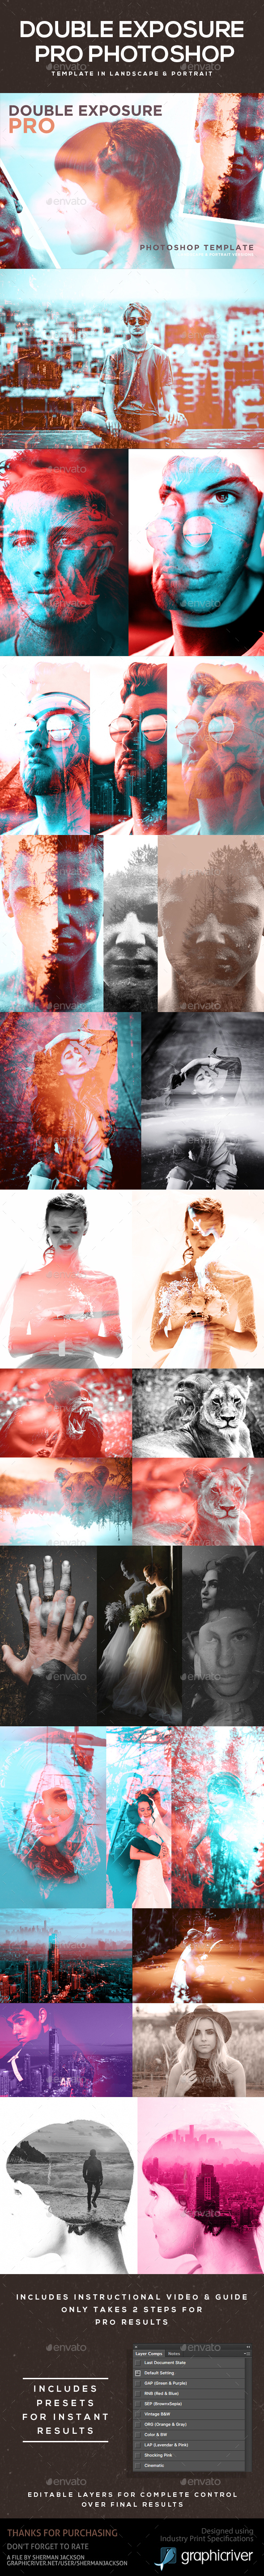 Double Exposure Pro Photoshop Template - Photo Templates Graphics